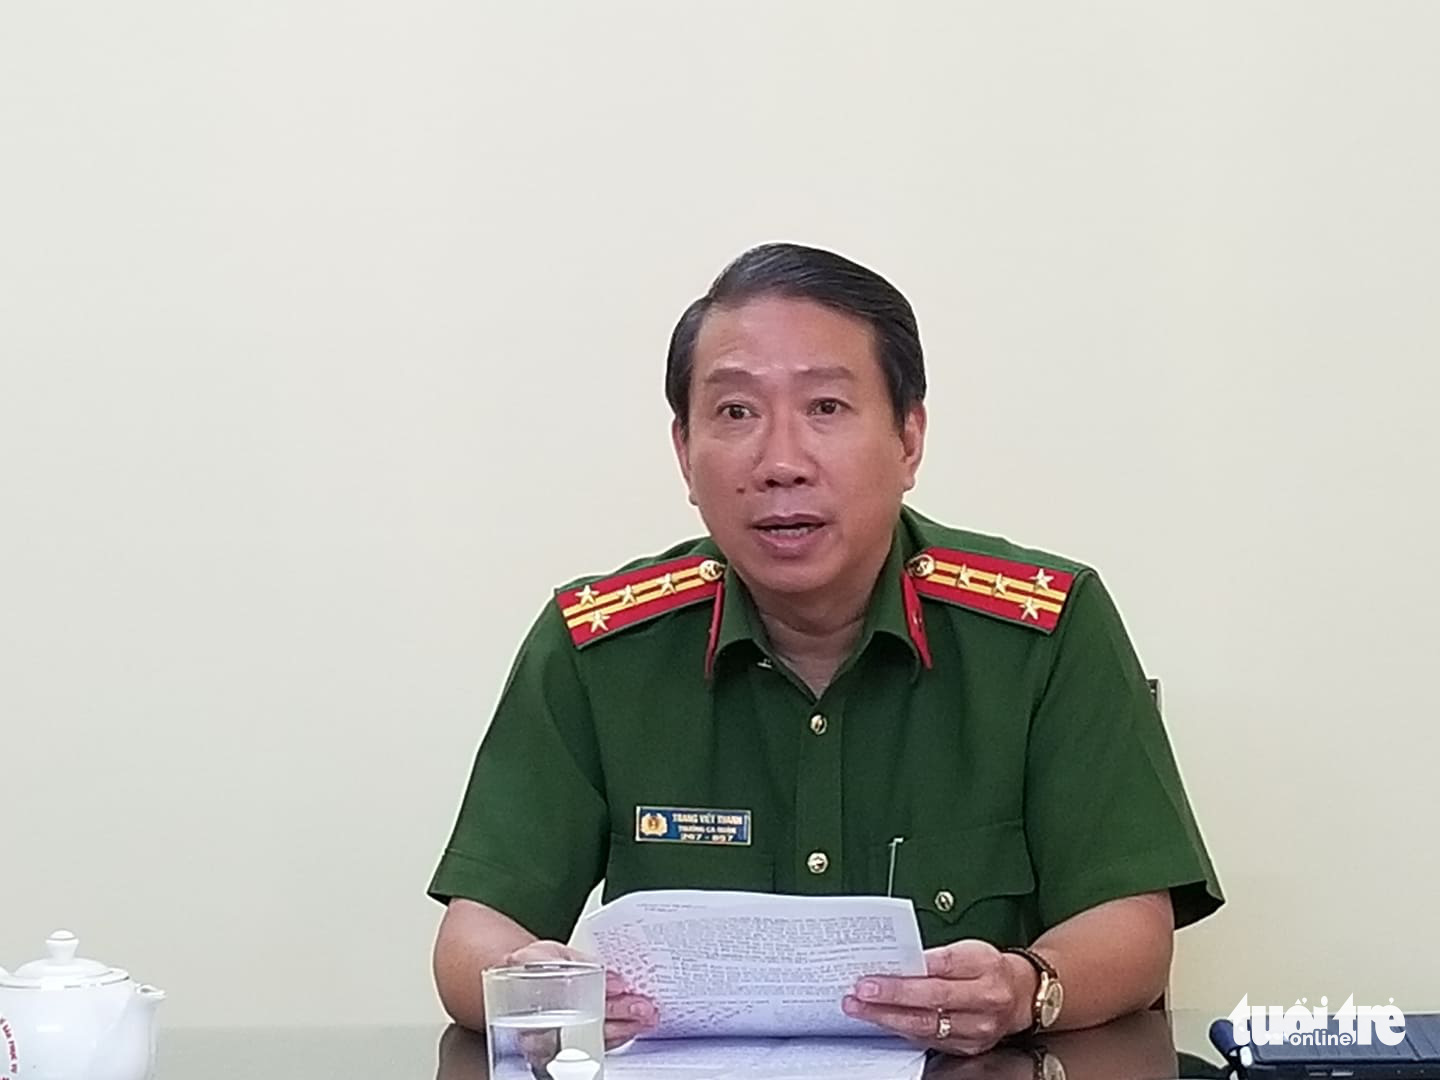 Colonel Trang Viet Thanh, chief of the police unit in District 9, speaks to the press regarding a child abuse case on February 11, 2020. Photo: Chau Tuan / Tuoi Tre